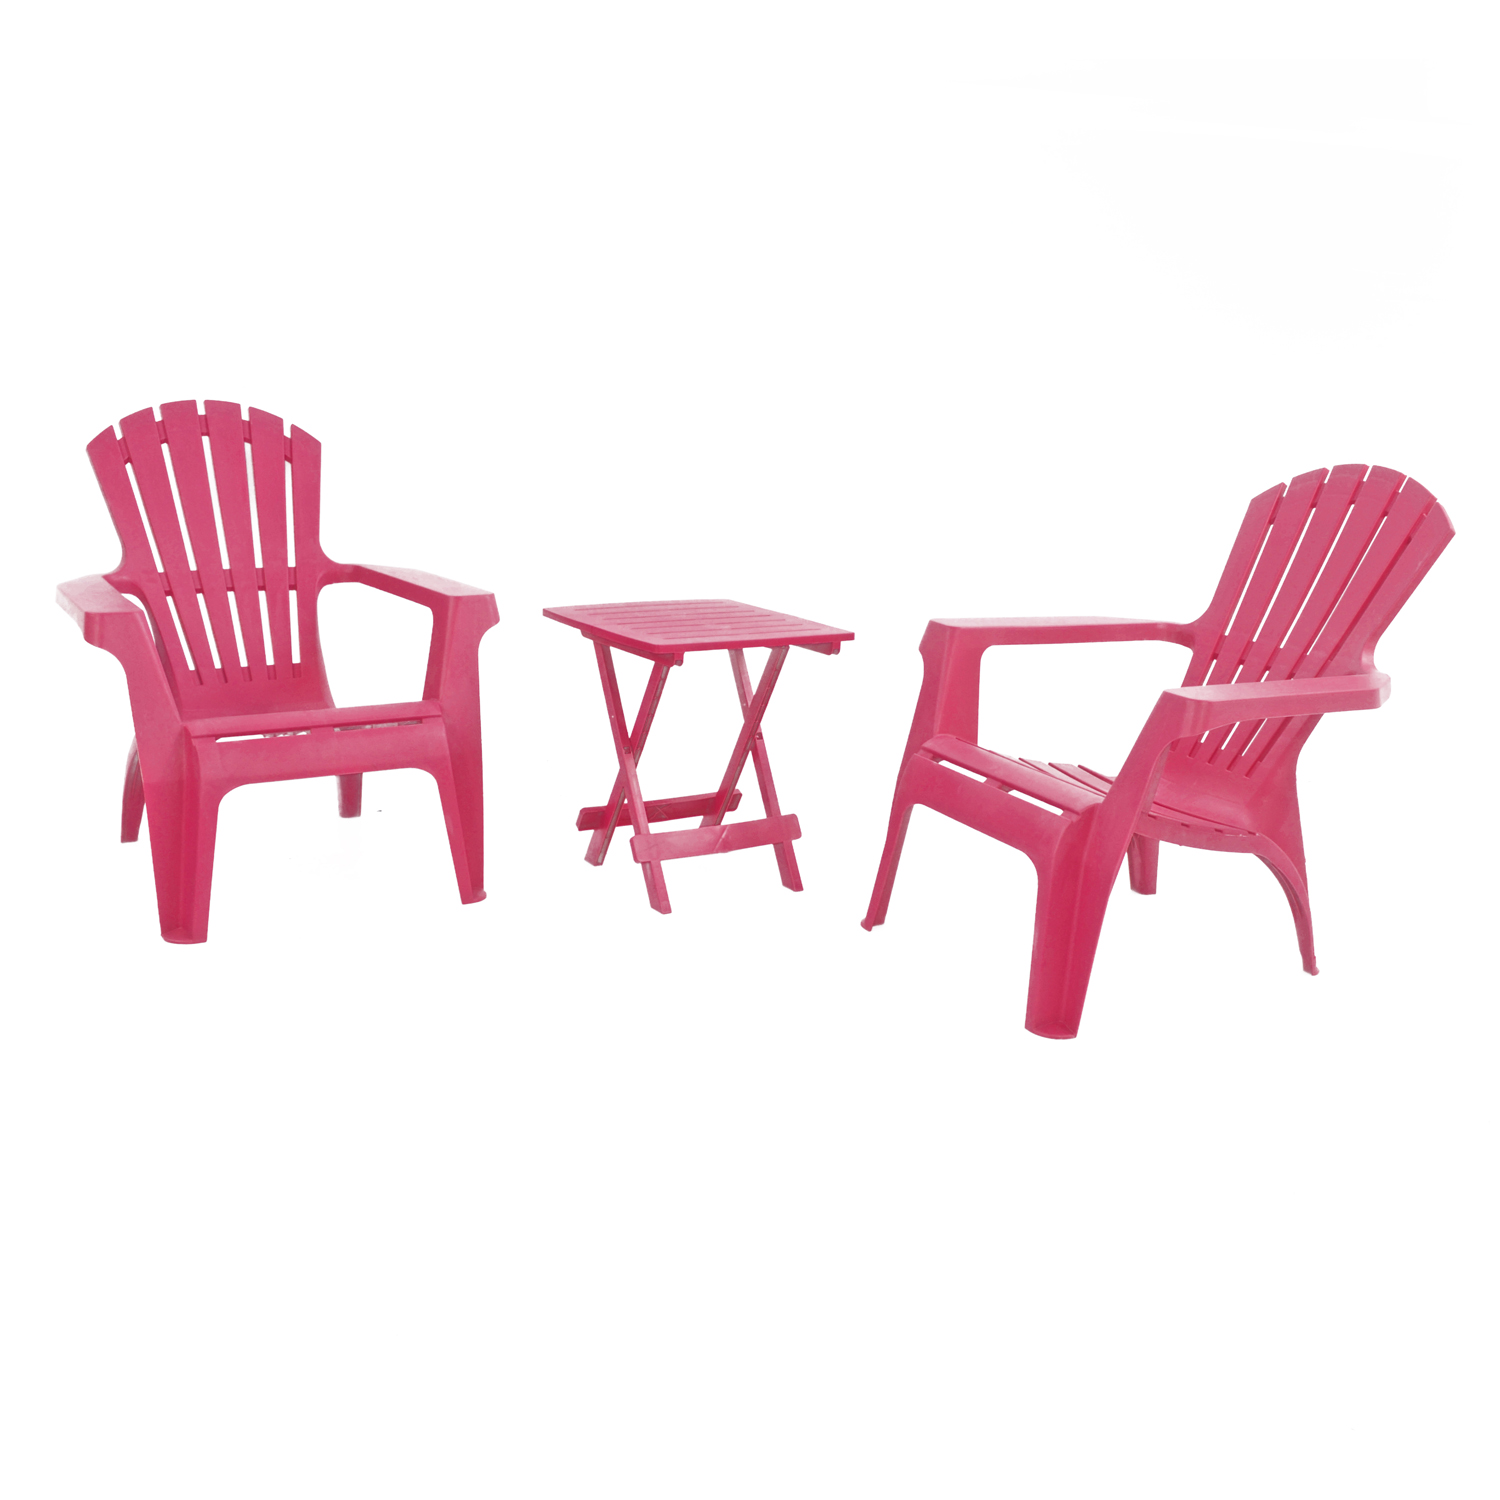 BARI SIDE TABLE WITH 2 ANDRIA CHAIRS SET PINK